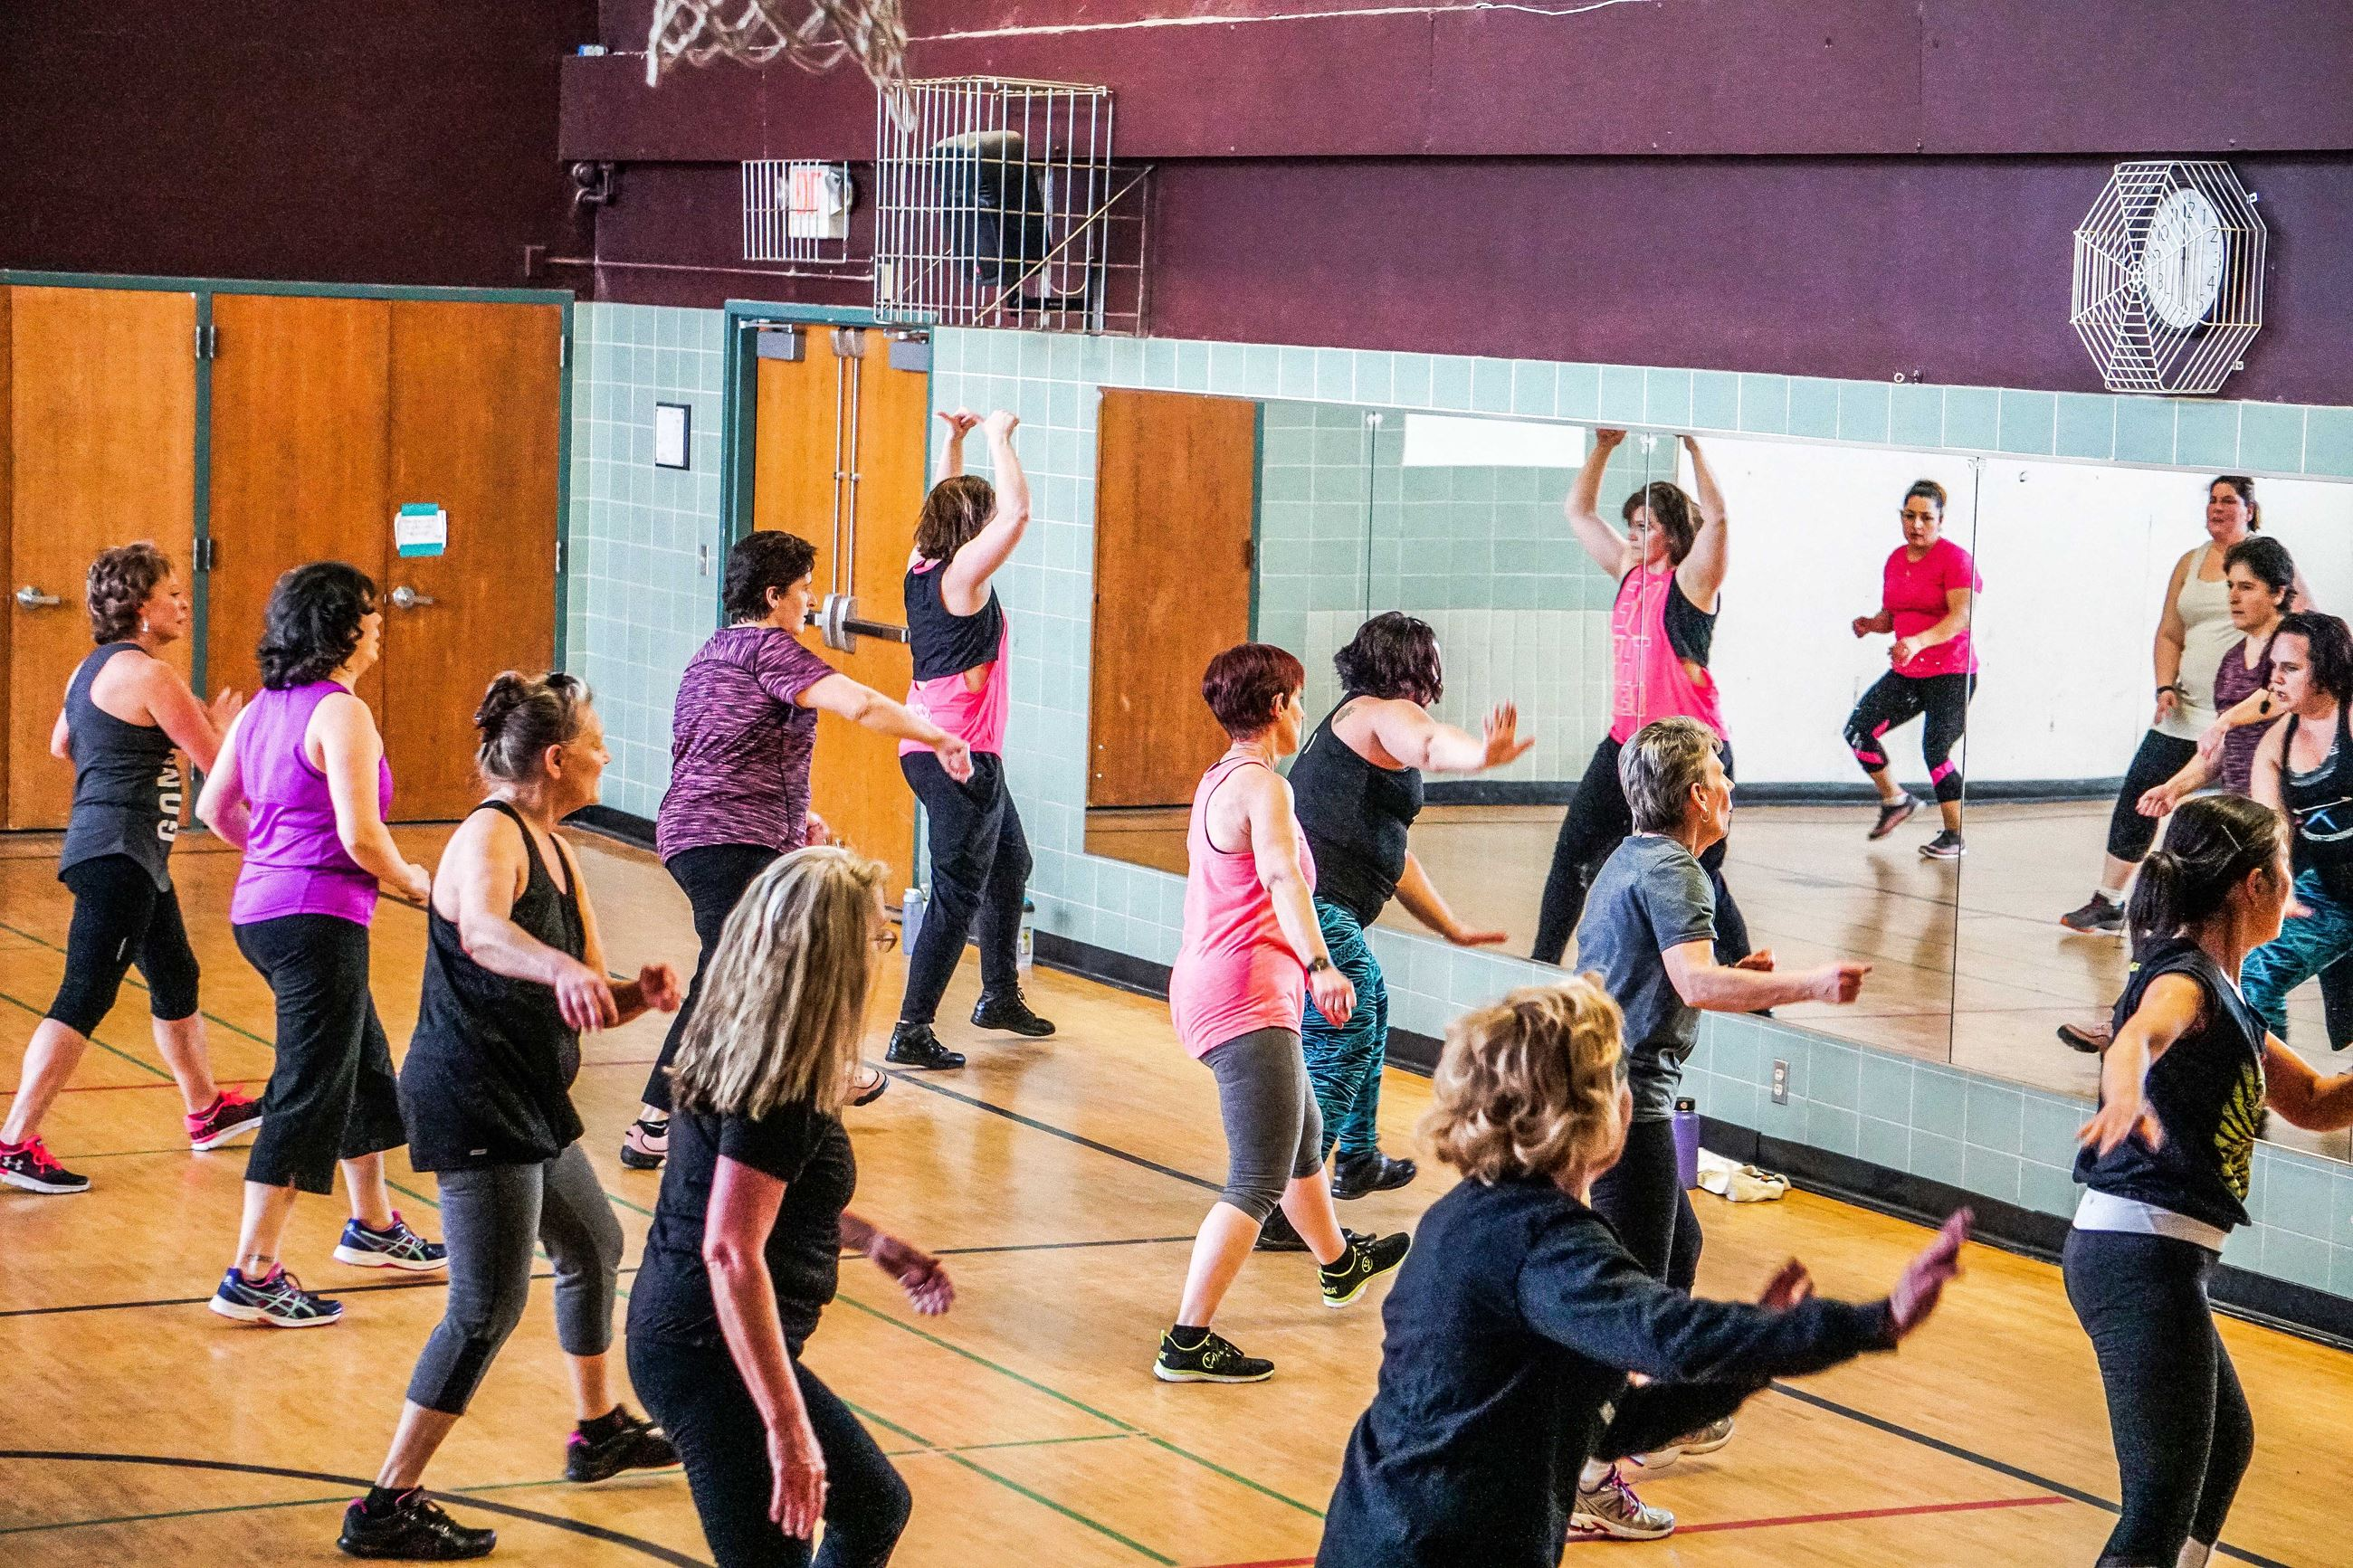 An image of individuals in a Zumba class.